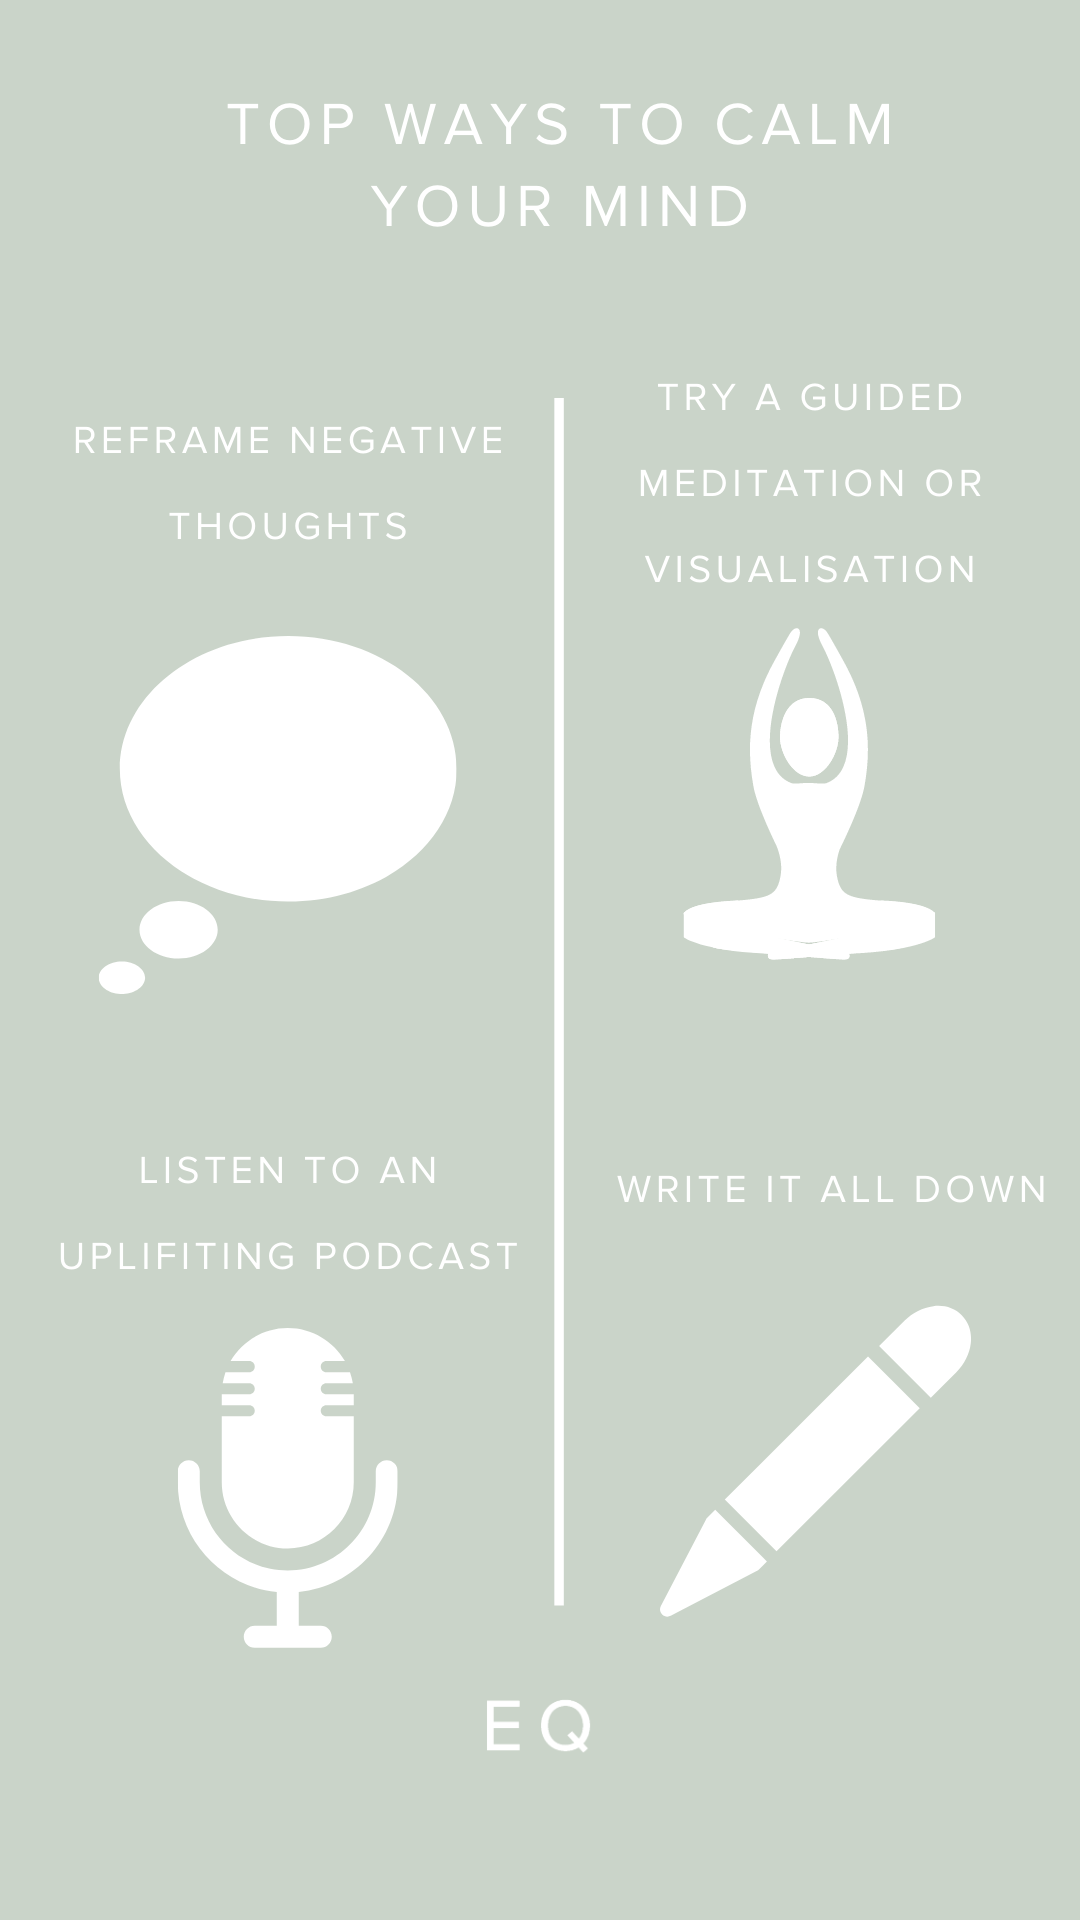 Top Ways to Calm Your Mind